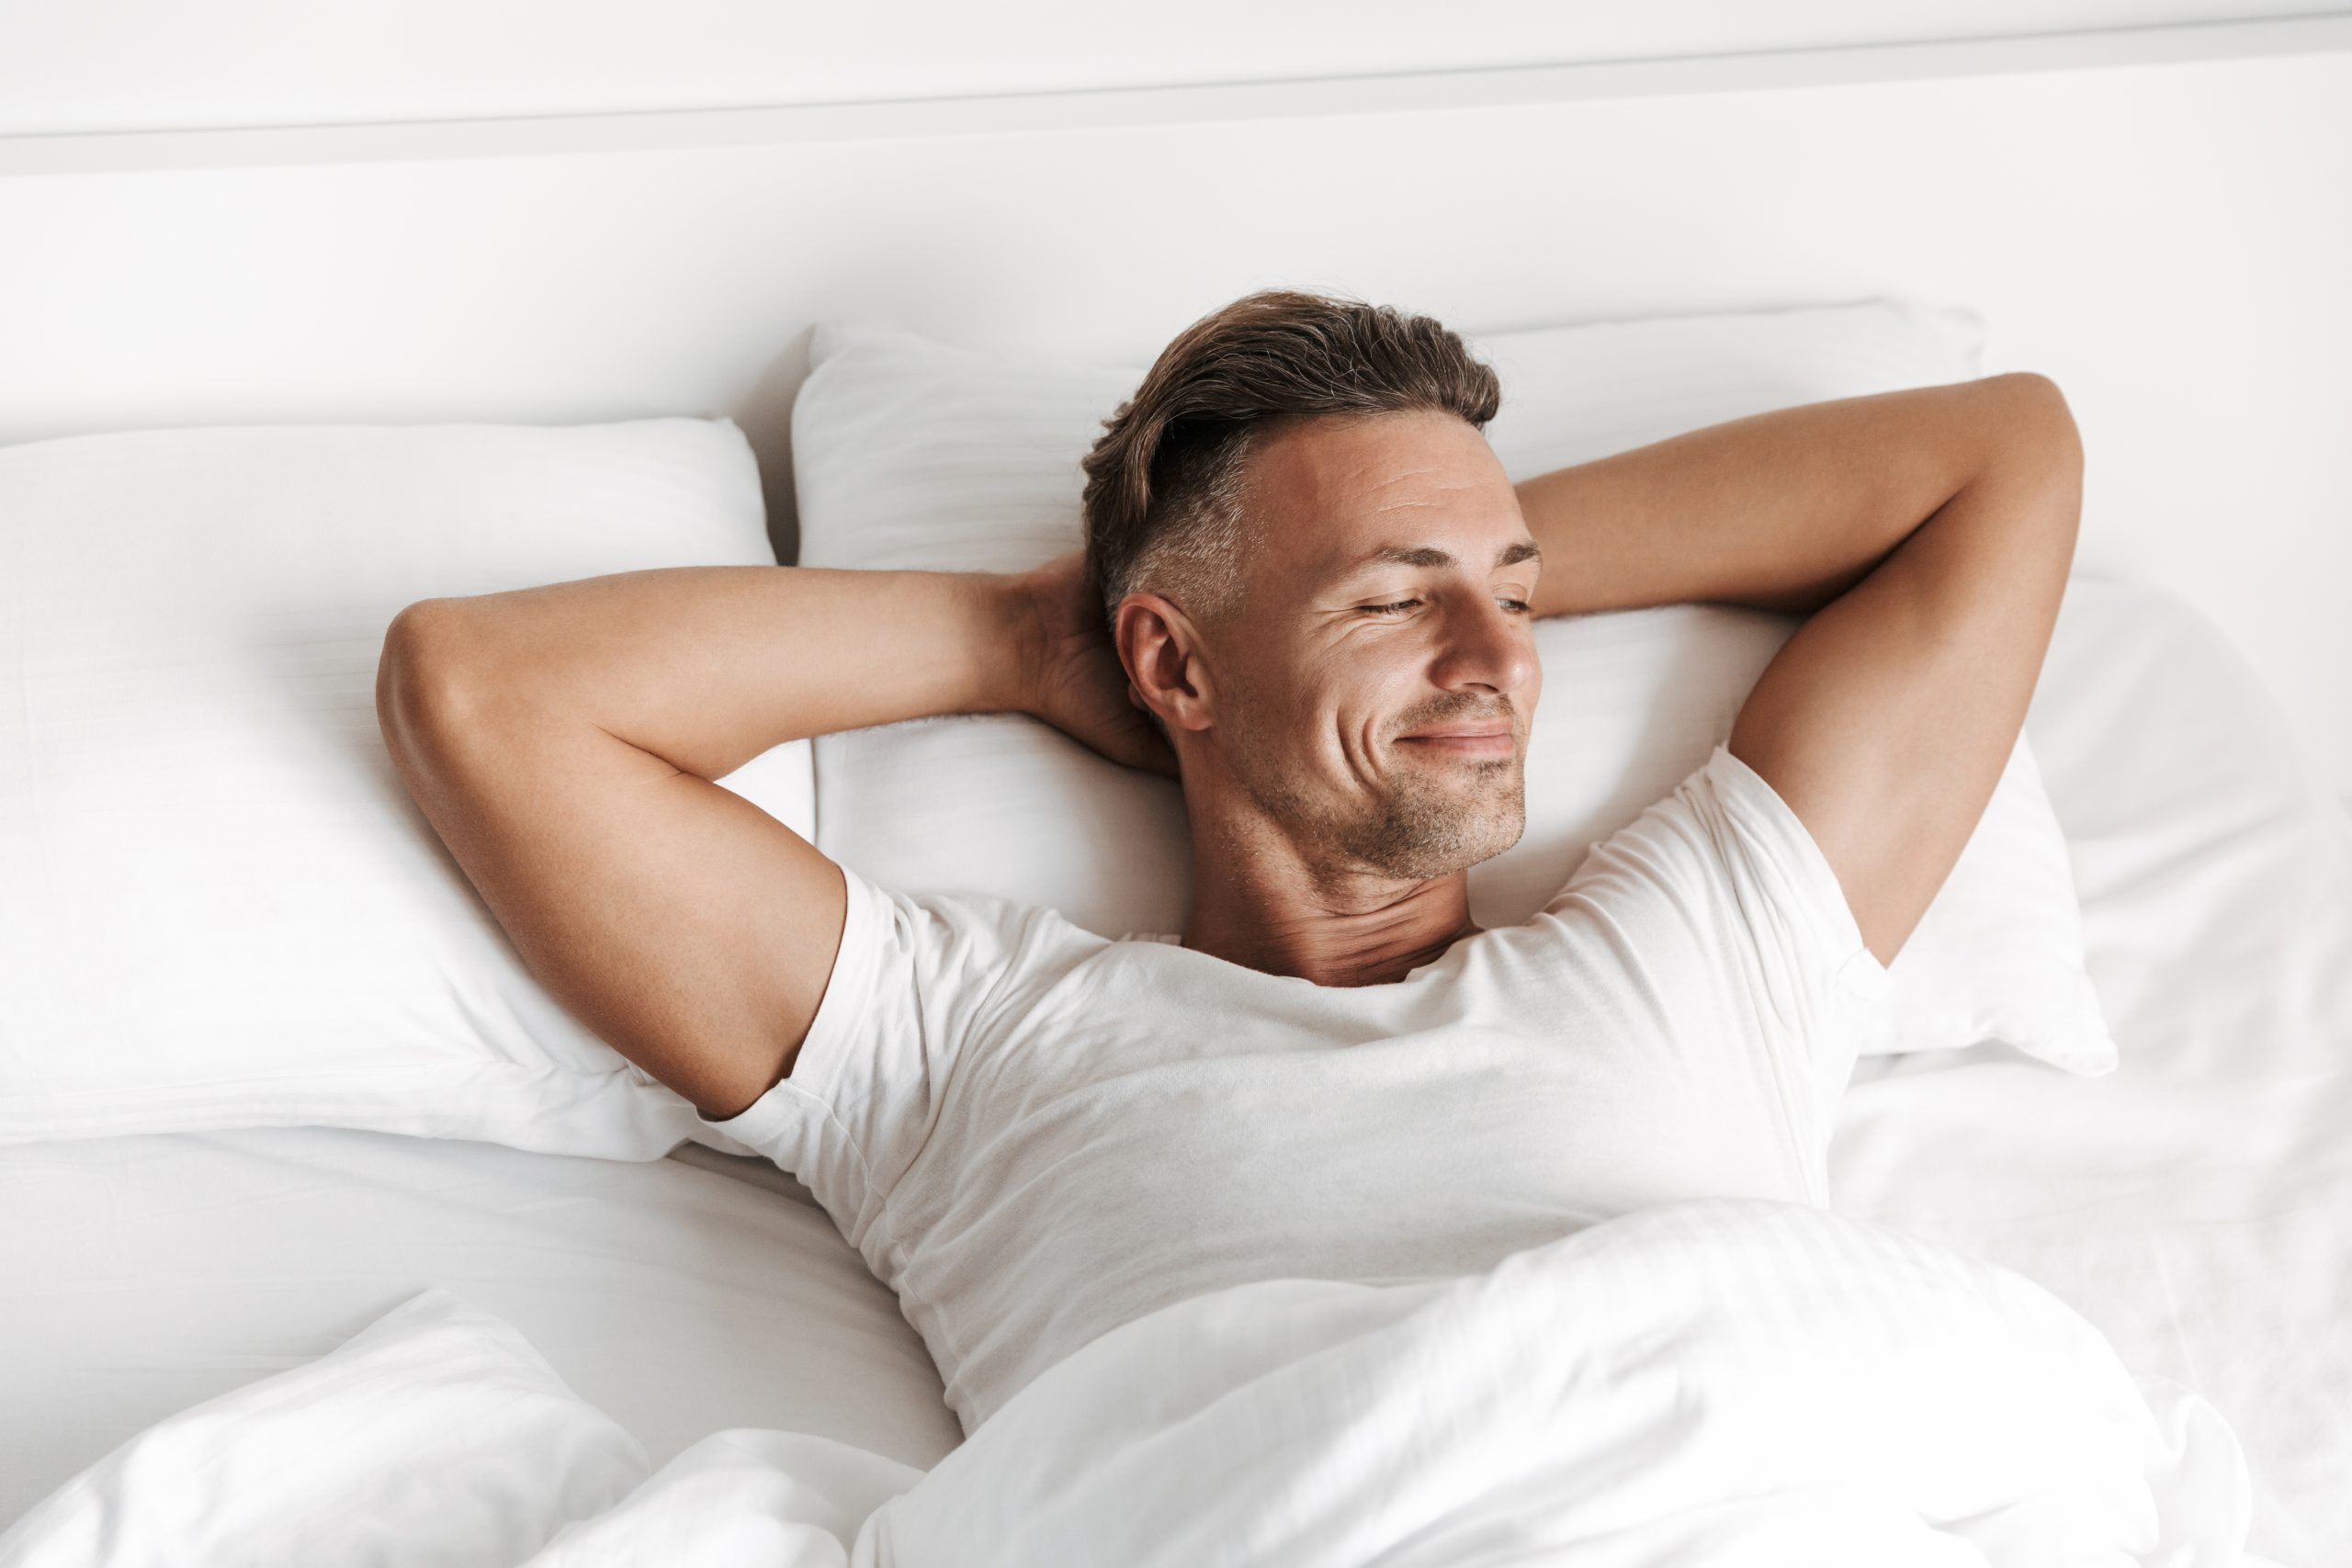 Satisfied man relaxing in bed